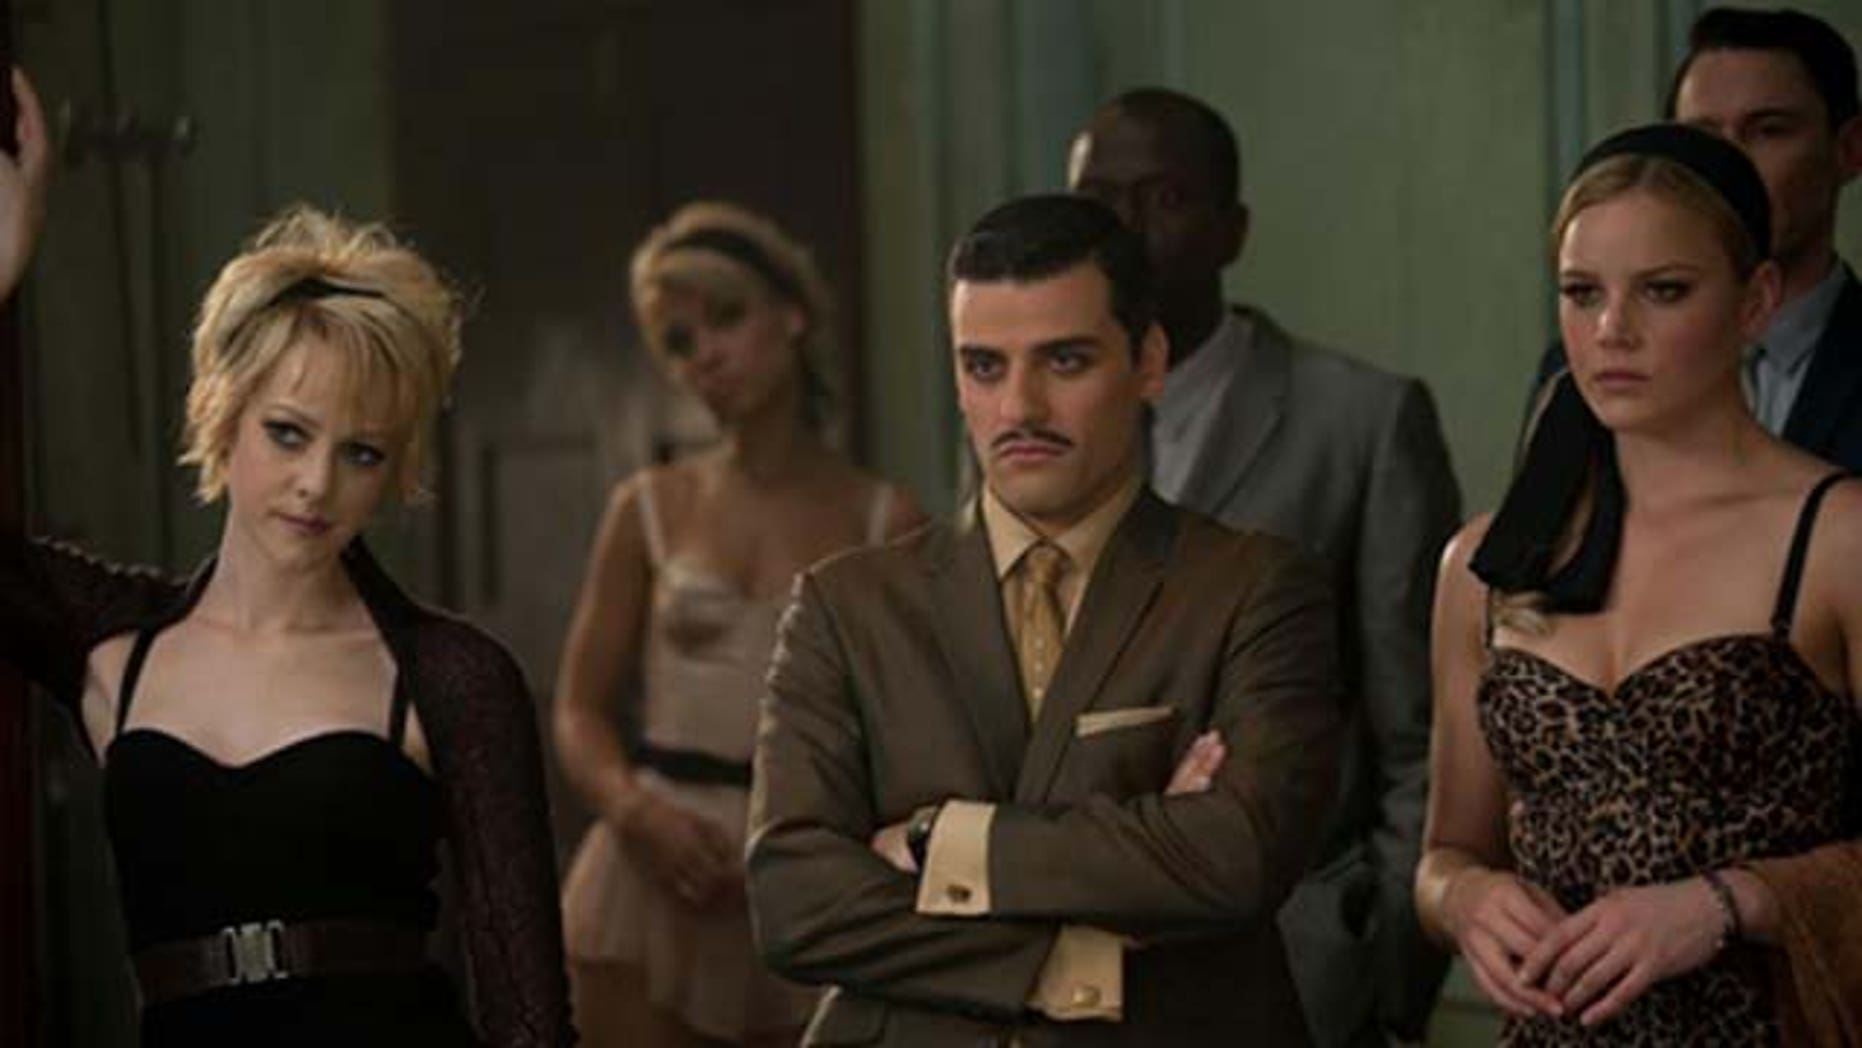 """(Front row l-r) JENA MALONE as Rocket, OSCAR ISAAC as Blue Jones and ABBIE CORNISH as Sweet Pea in Warner Bros. Pictures' and Legendary Pictures' epic action fantasy """"SUCKER PUNCH,"""" a Warner Bros. Pictures release."""